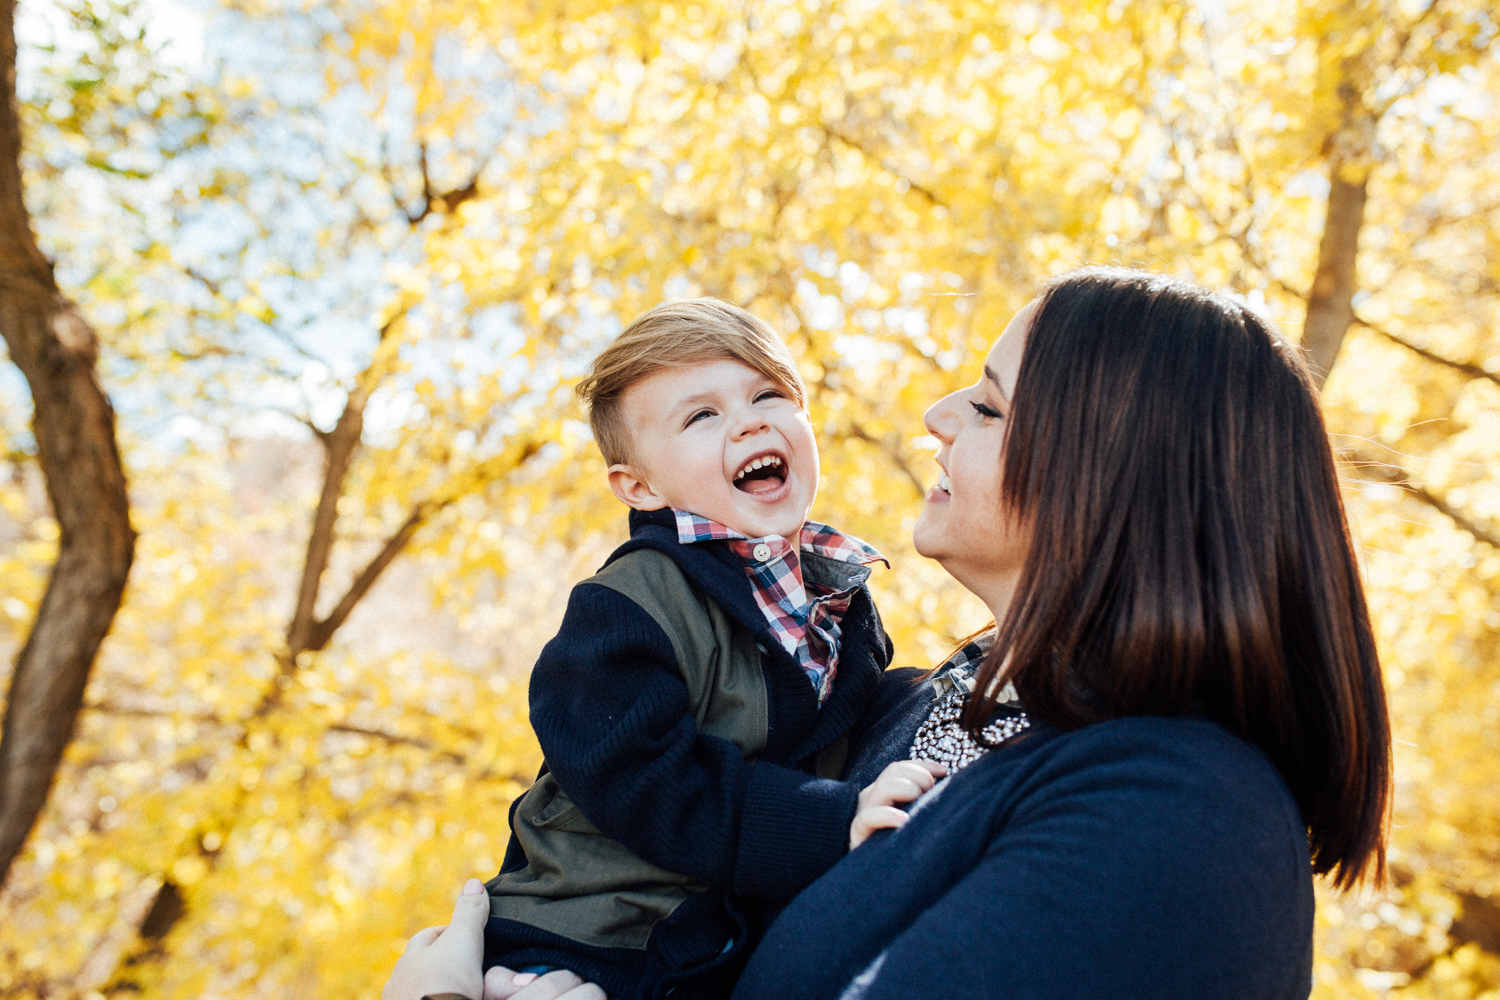 candid-photo-of-mother-and-son-laughing-in-fall-leaves-during-free-mini-session-with-jen-farichild-photography-in-salt-lake-city-utah